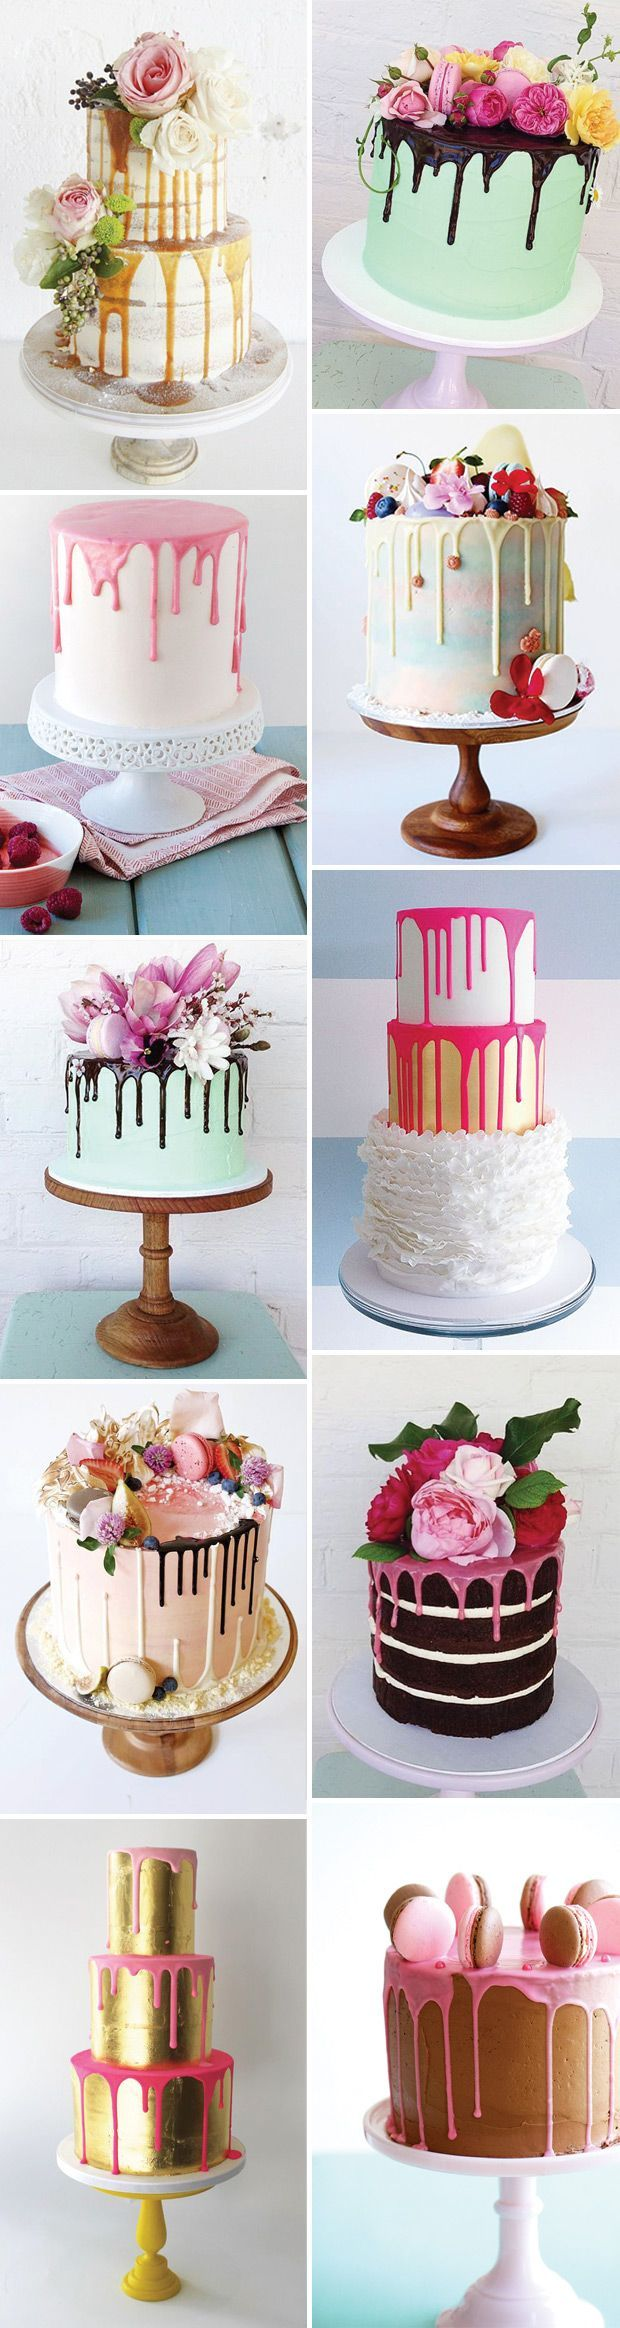 Oh Yum! Colour Drip Wedding Cakes - The Latest Cake Trend | Find out more on www.onefabday.com